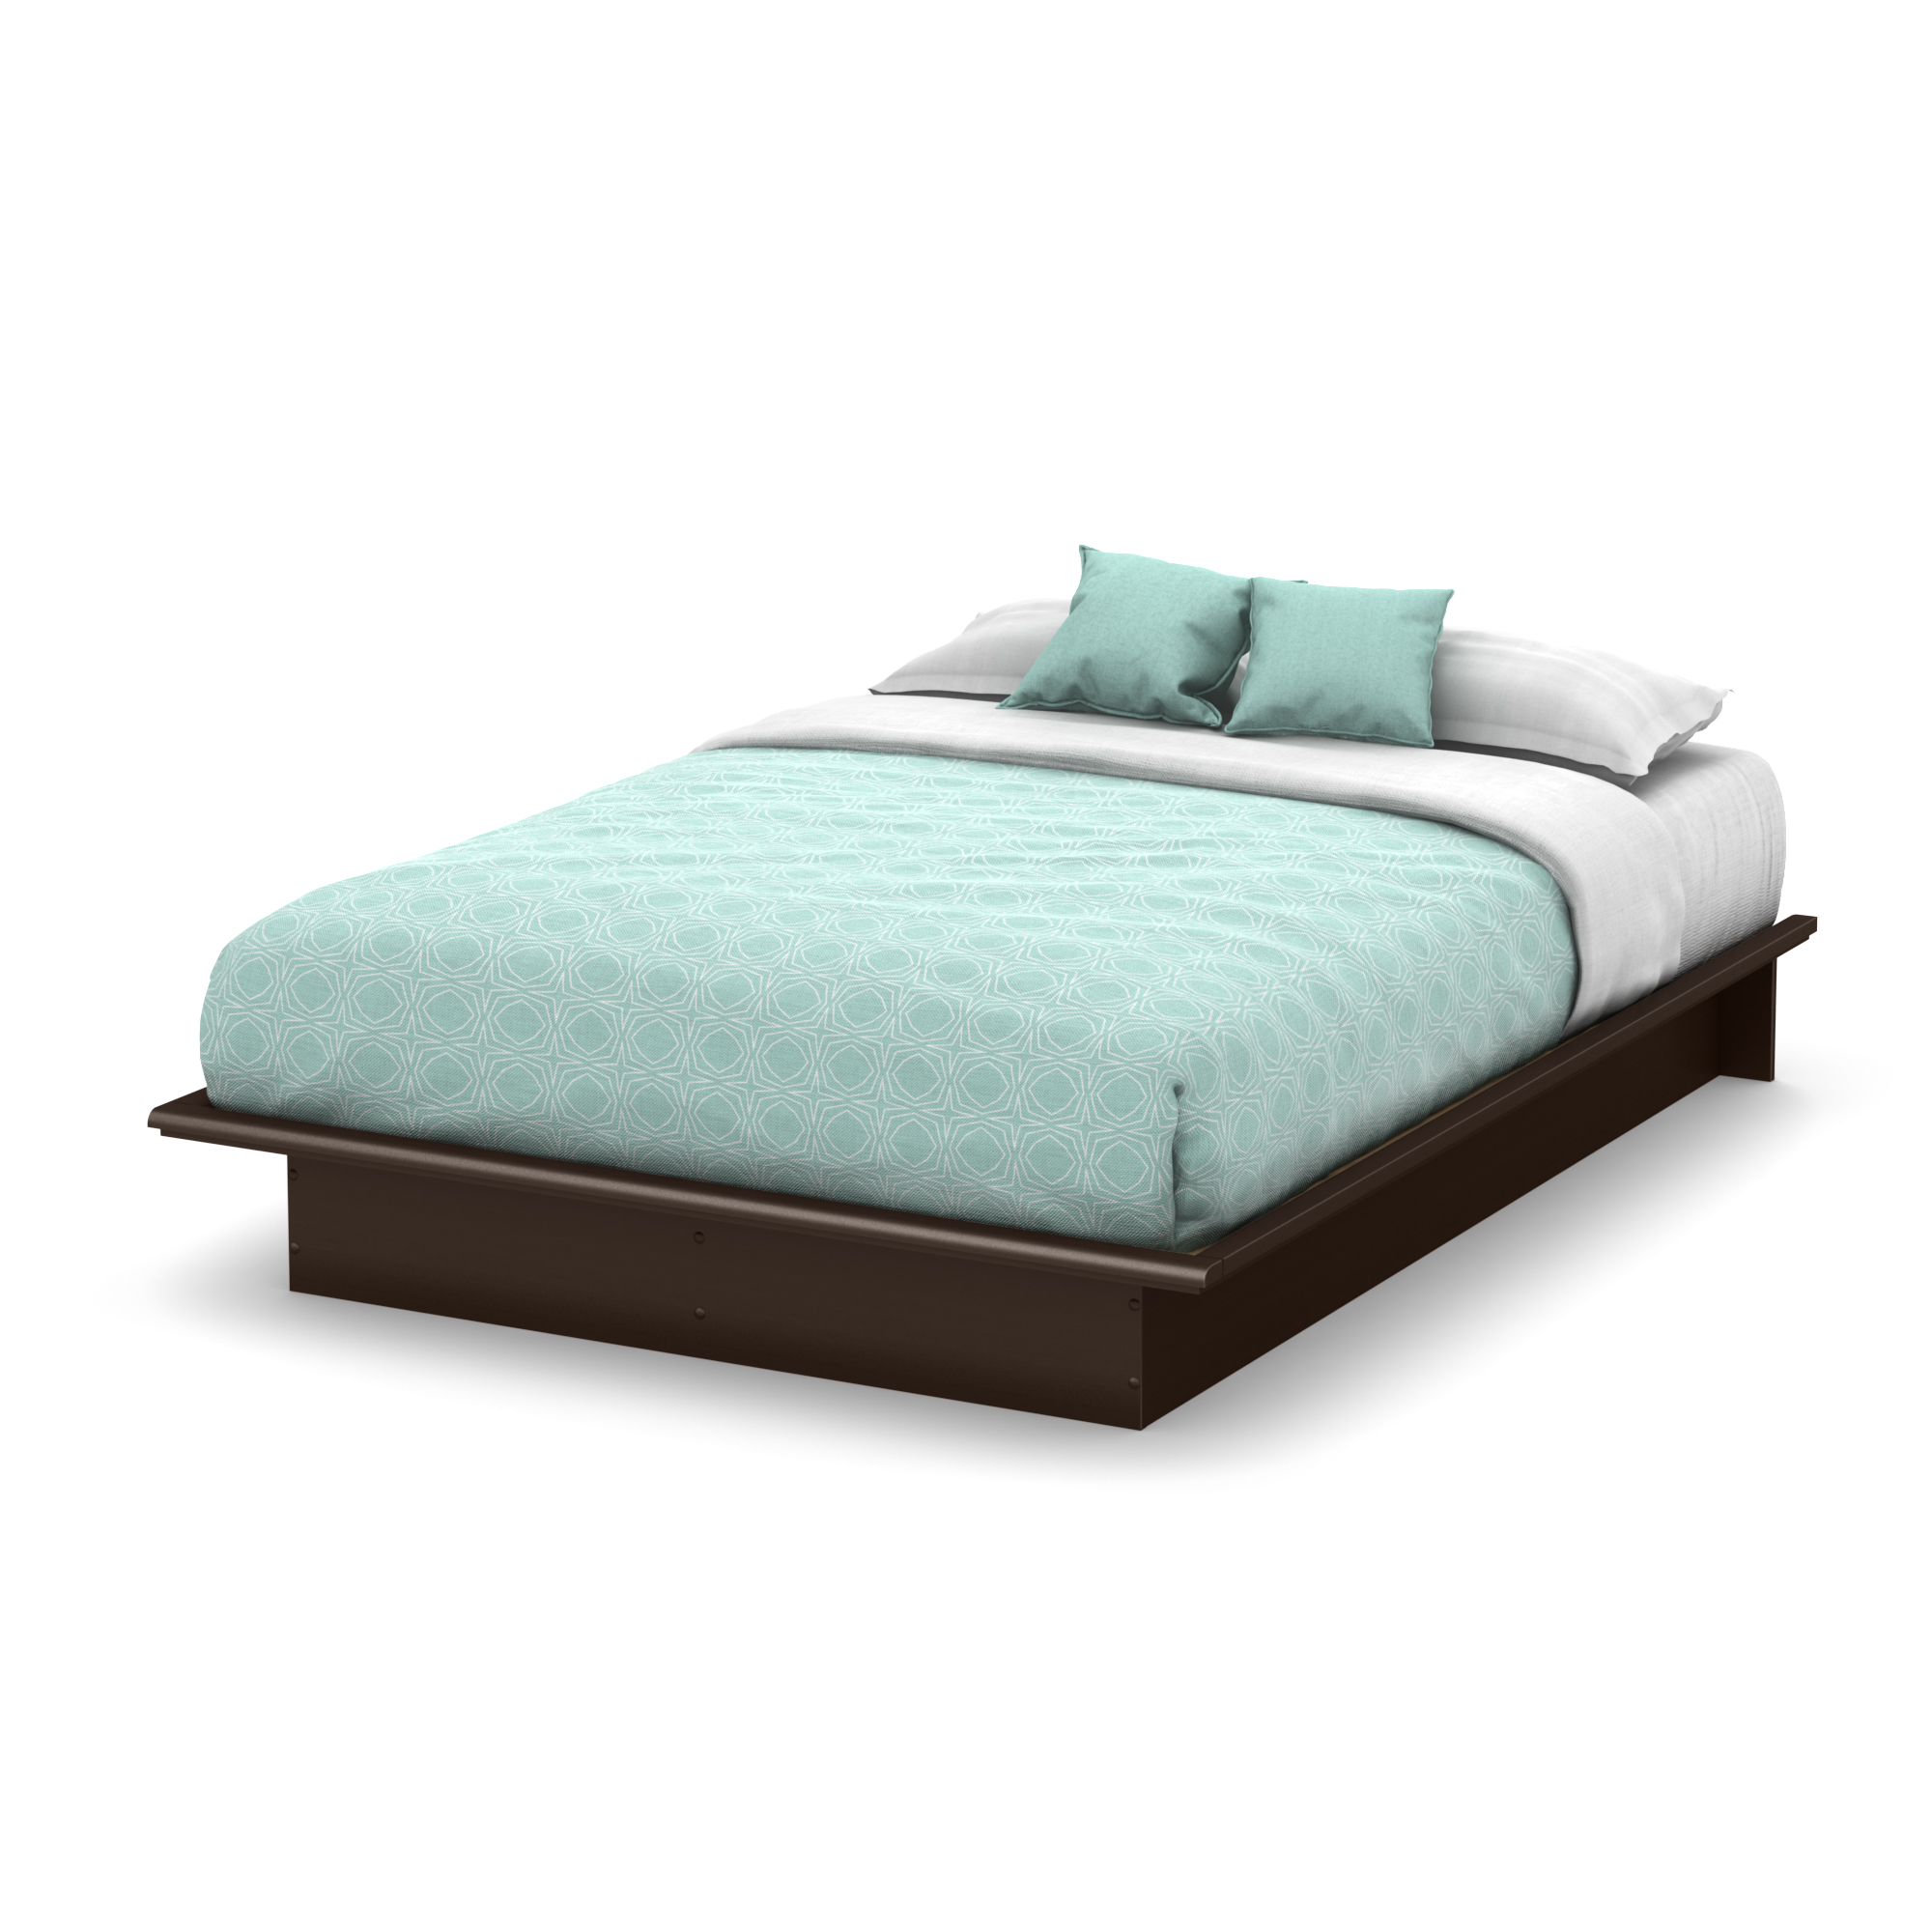 beds: twin, full, queen & king size beds - walmart